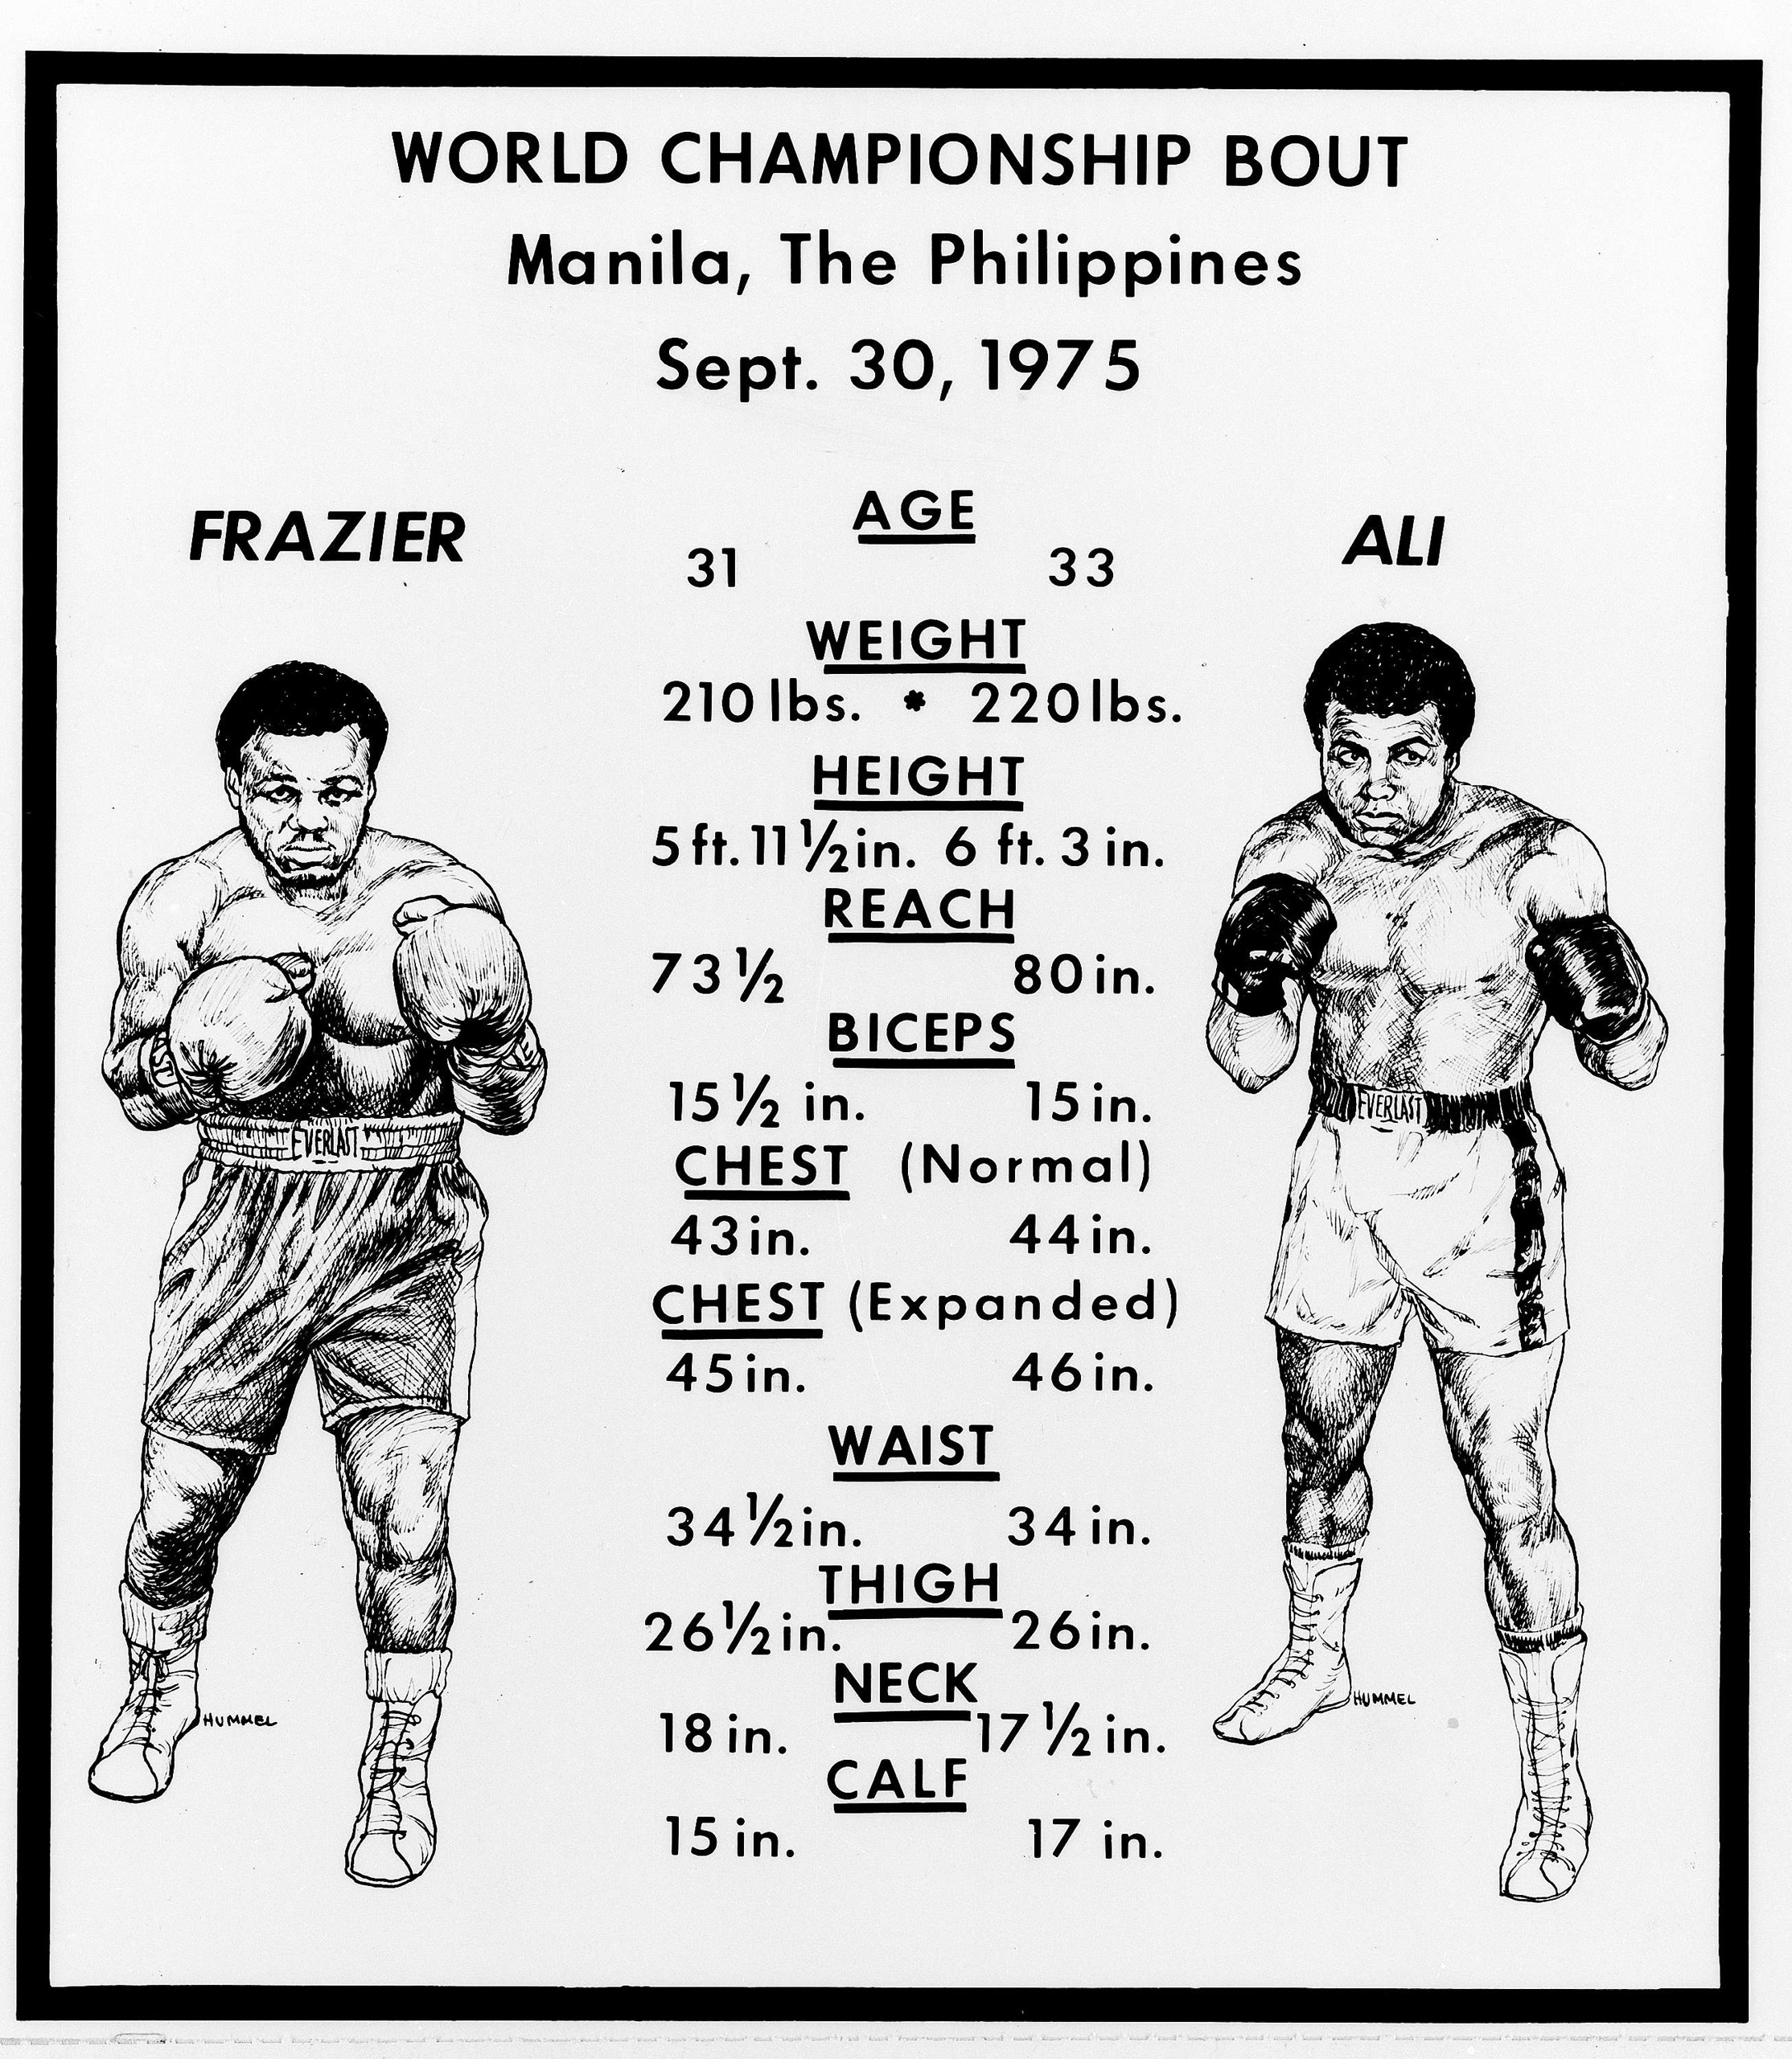 This chart compares the stats of boxers Joe Frazier, left, and Muhammad Ali.  The heavyweights are due to meet in Manila, Sept. 30, 1975.